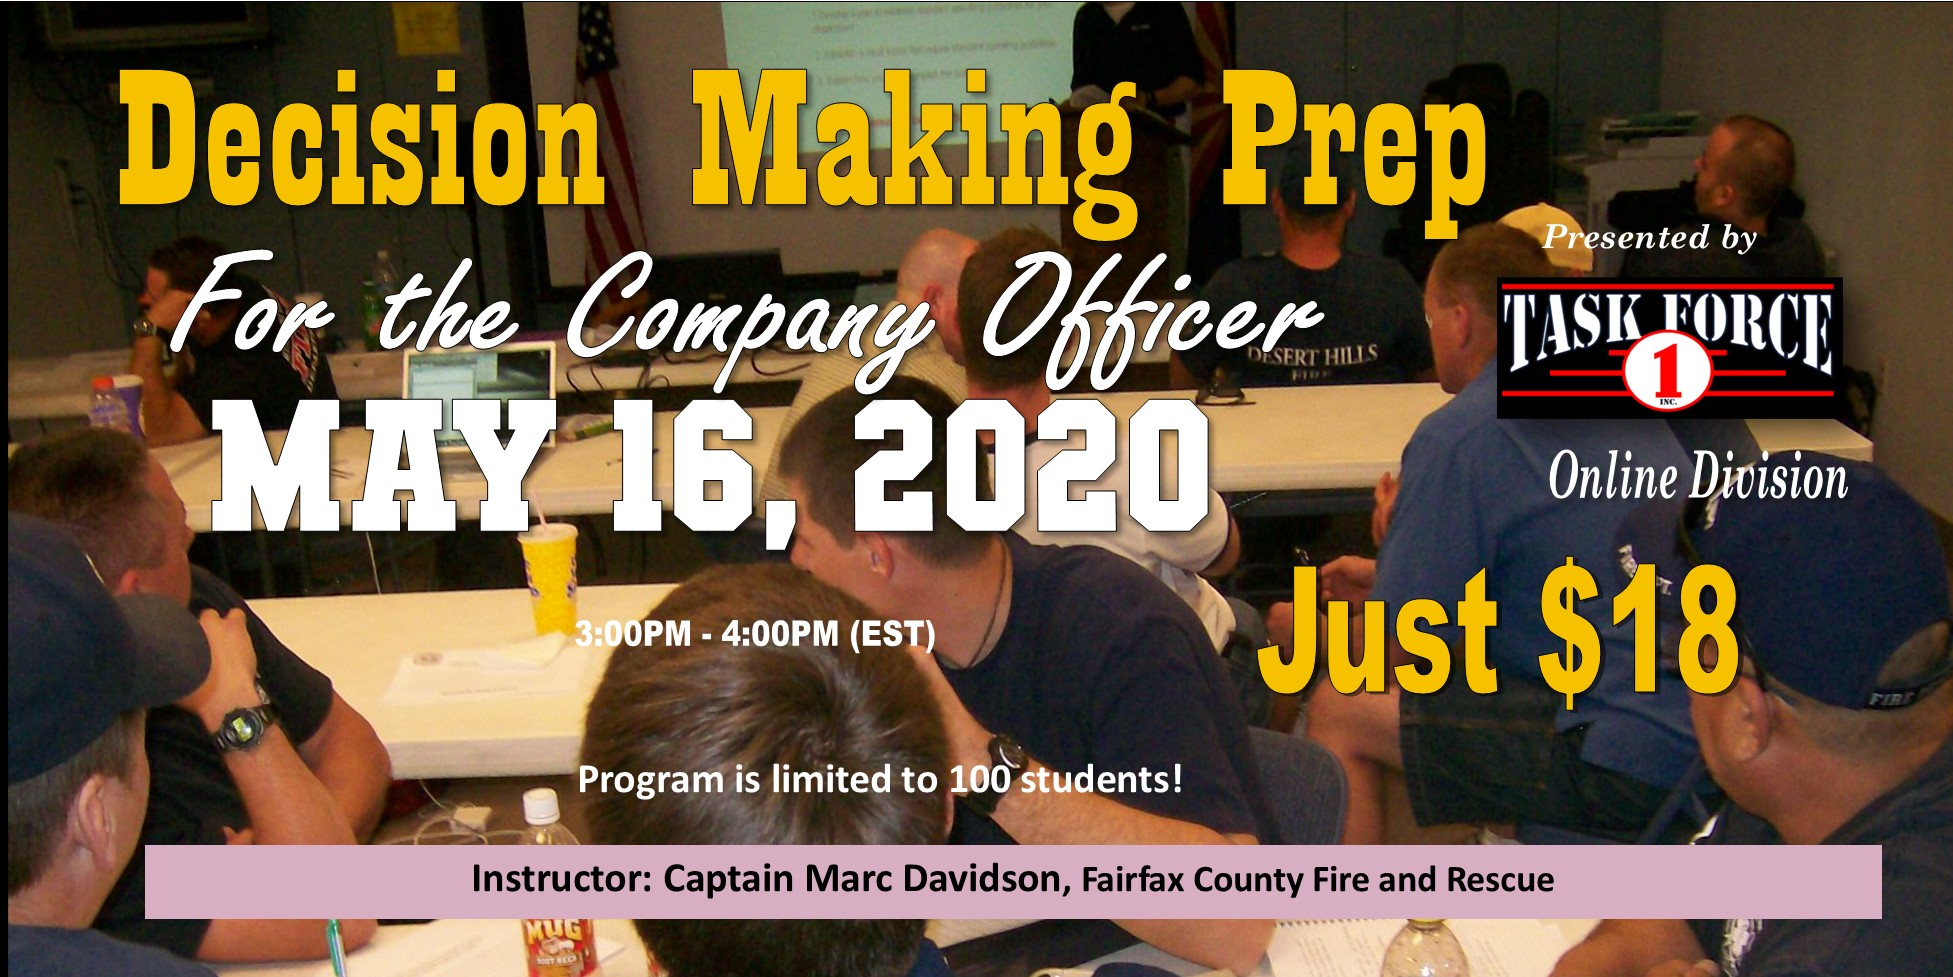 Decion Making For Company Officers